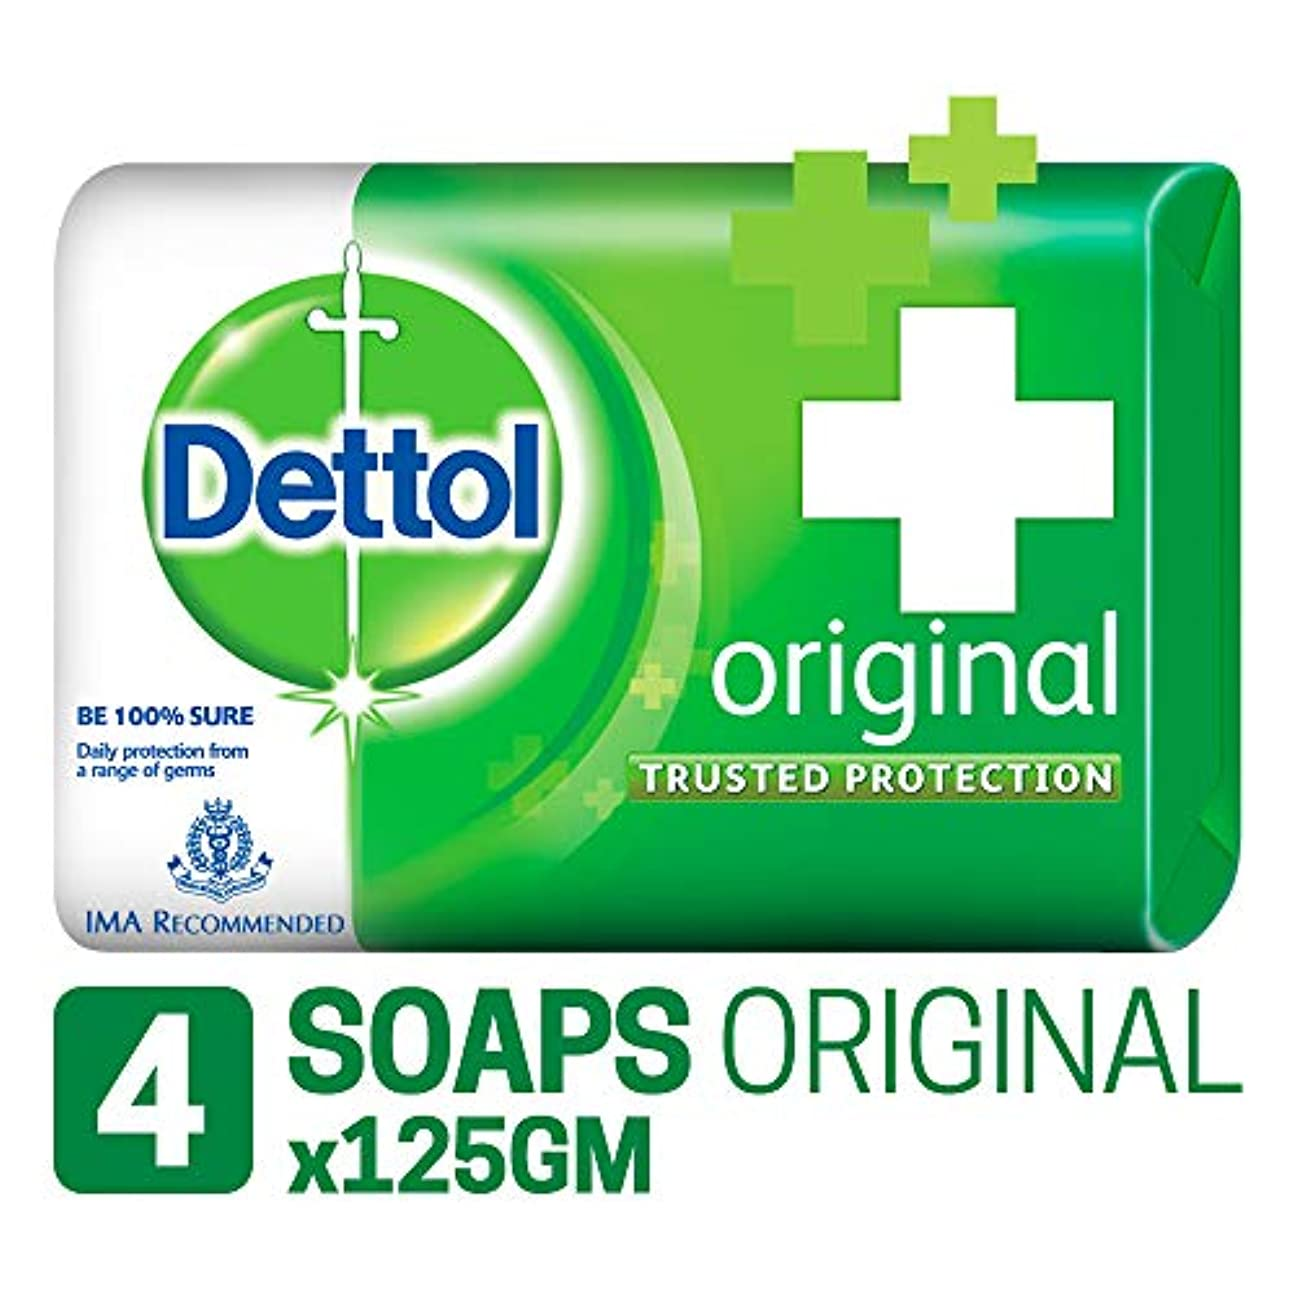 リサイクルする準備した統治可能Dettol Original Soap, 125g (Pack Of 4) SHIP FROM INDIA